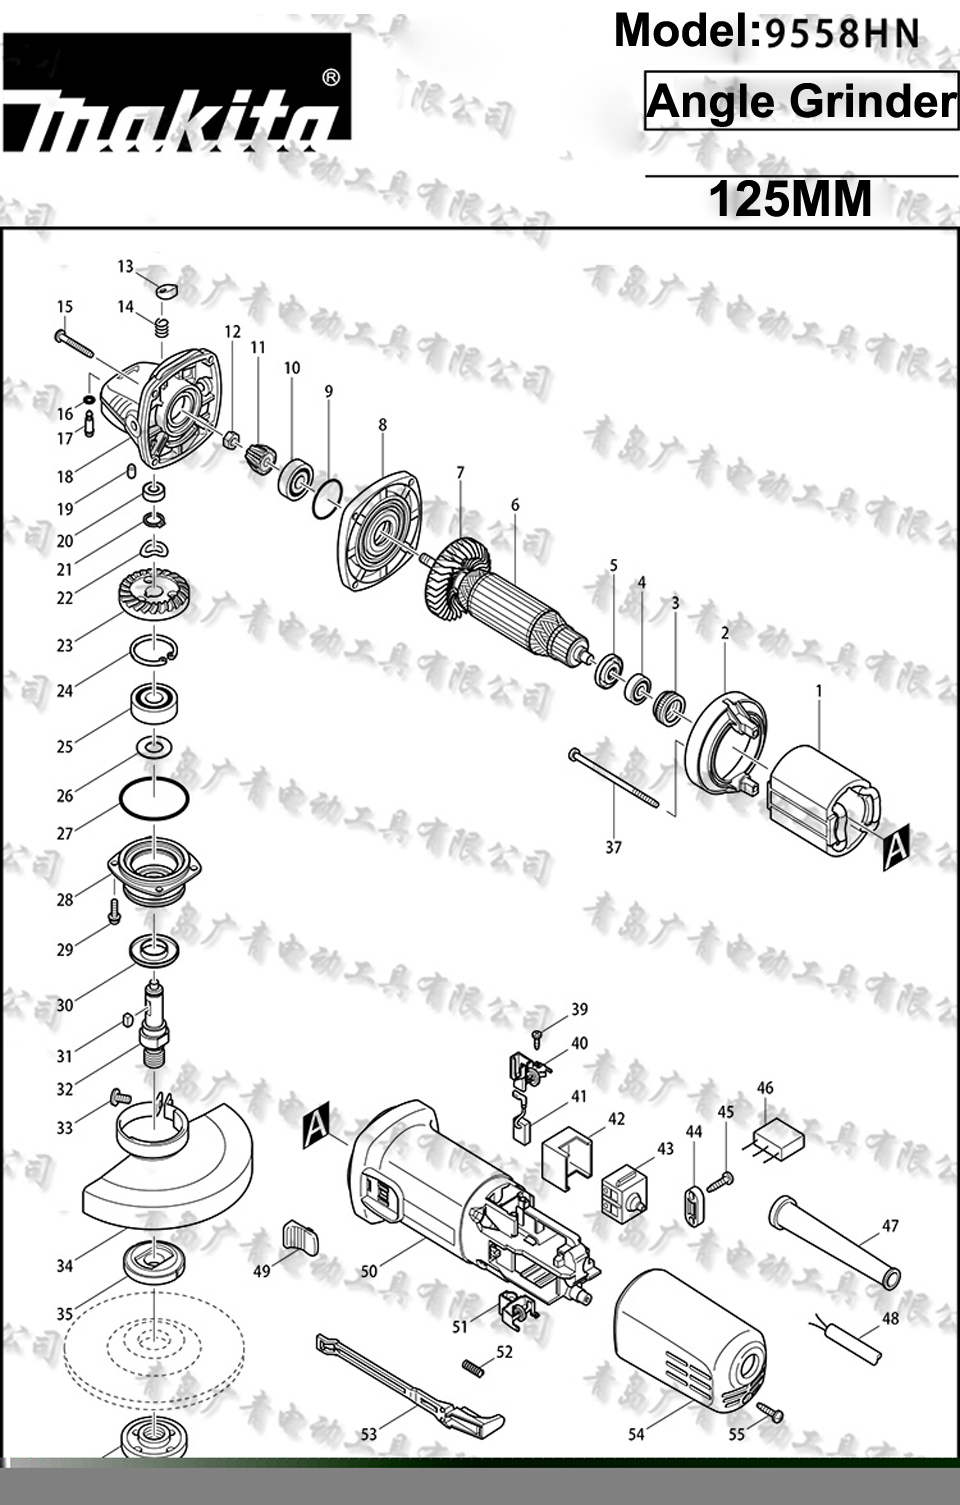 1990 Toyota Celica Radio Wiring Diagram additionally Toyota Fortuner Engine Diagram besides Ford 4 6 Oil Filter Adapter Leak likewise 2004 Toyota Tundra 4 7 Timing Belt Diagram likewise Mitsubishi 3 0 V6 Engine Diagram. on toyota ta a 2 7 2008 specs and images